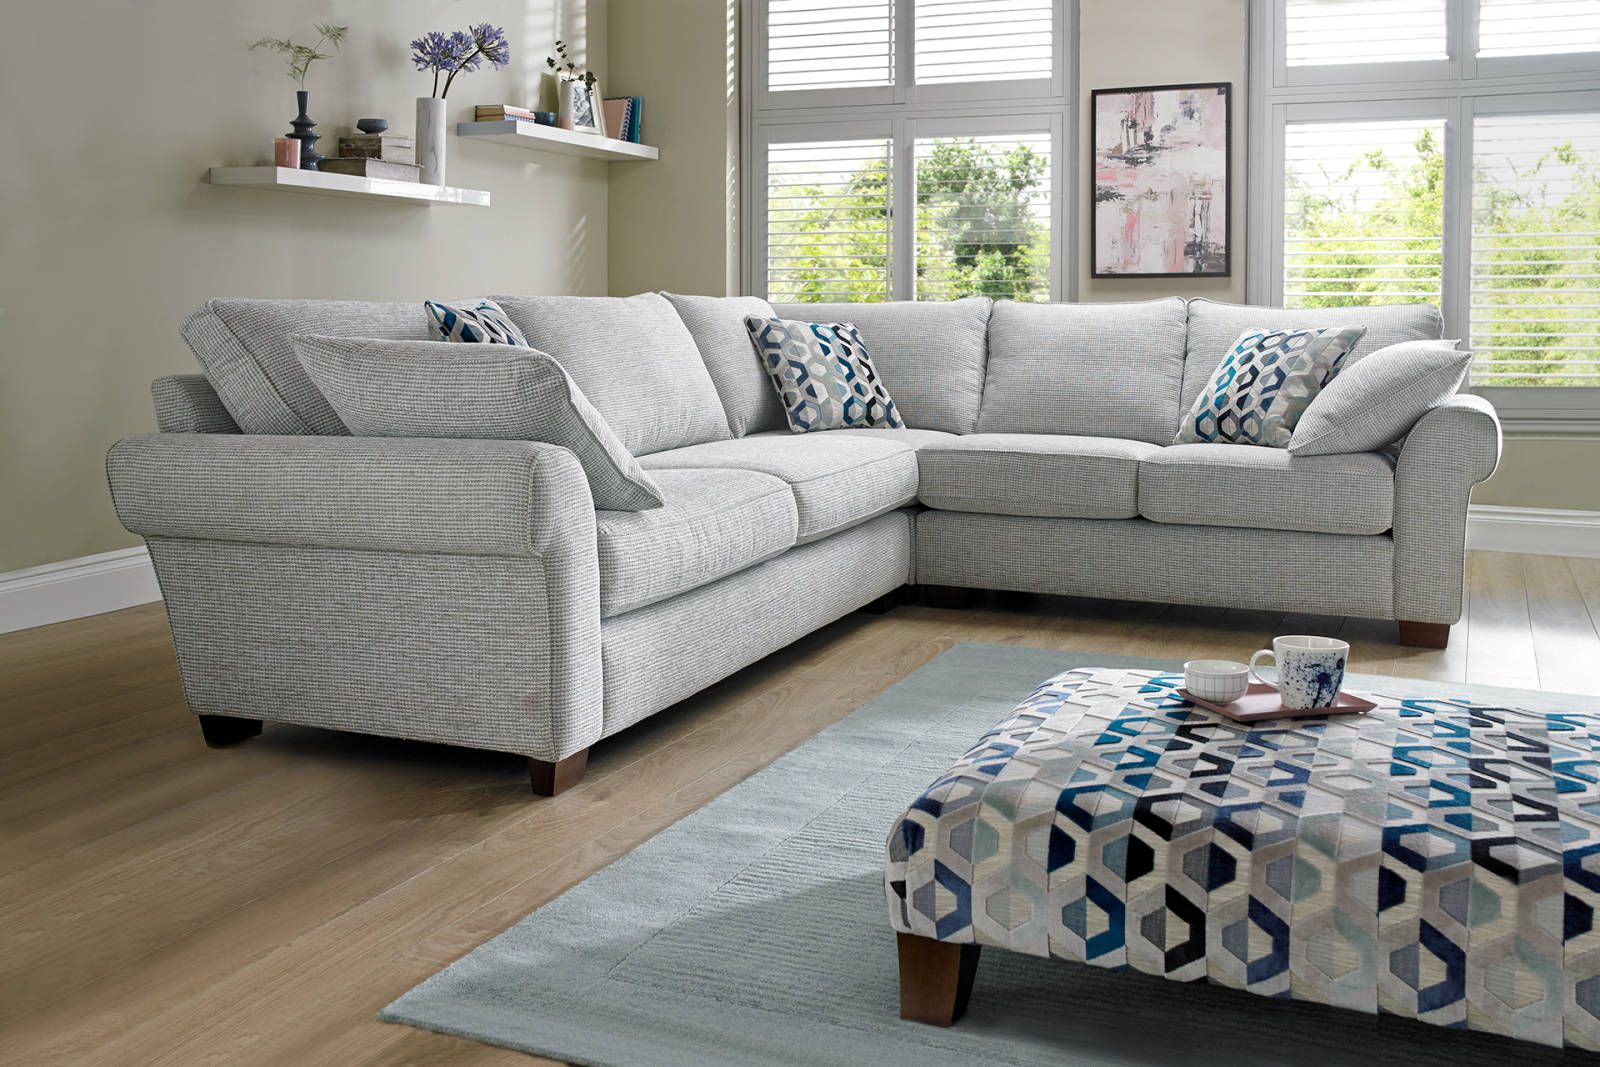 Rosie Sofology Home Fabric Sectional Living Room Sectional